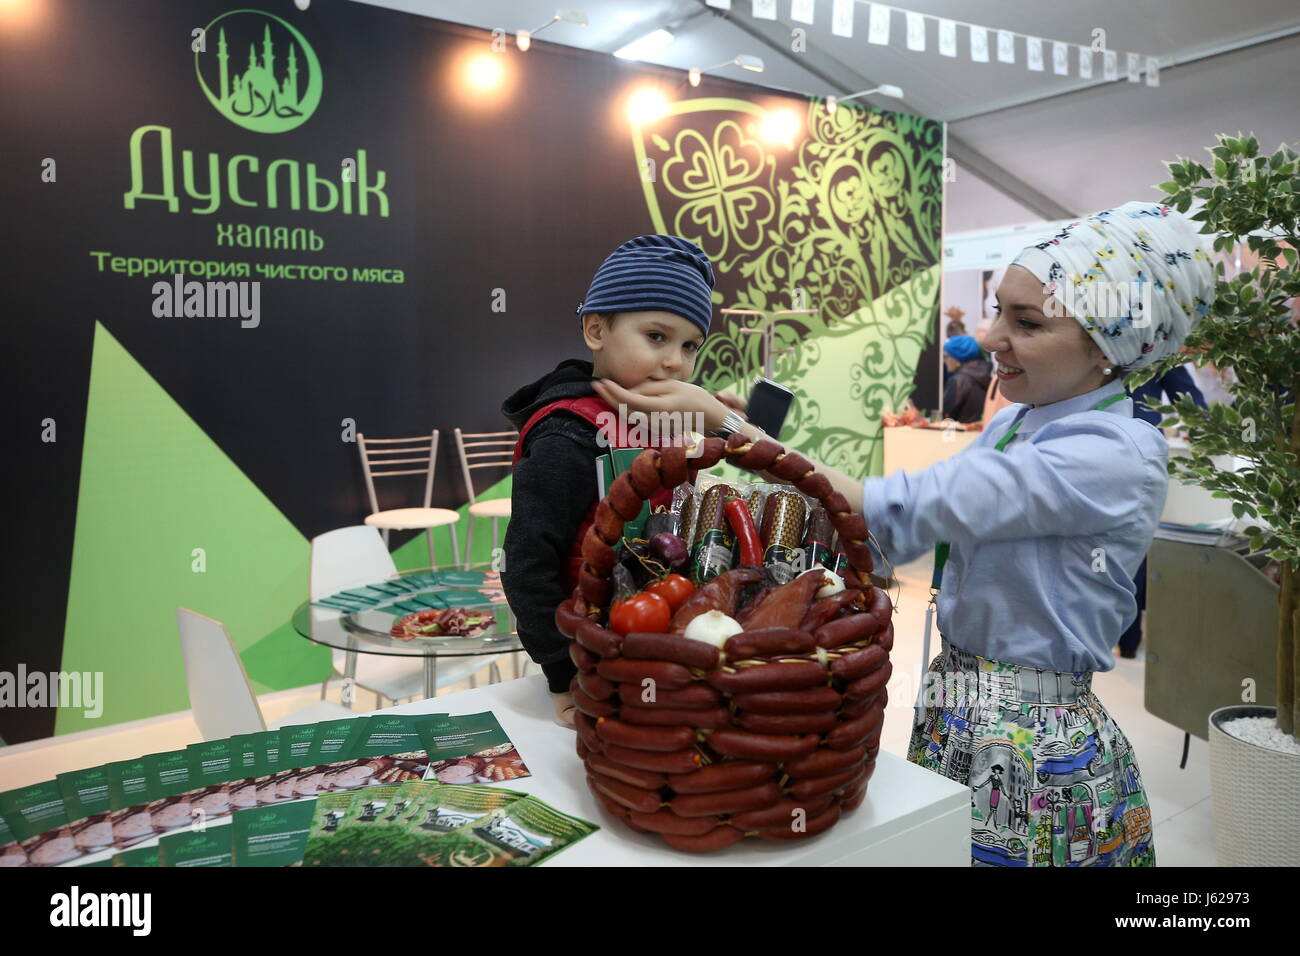 Kazan, Russia. 18th May, 2017. A woman with a child at the Duslyk stand at the Russia Halal Expo exhibition as part - Stock Image